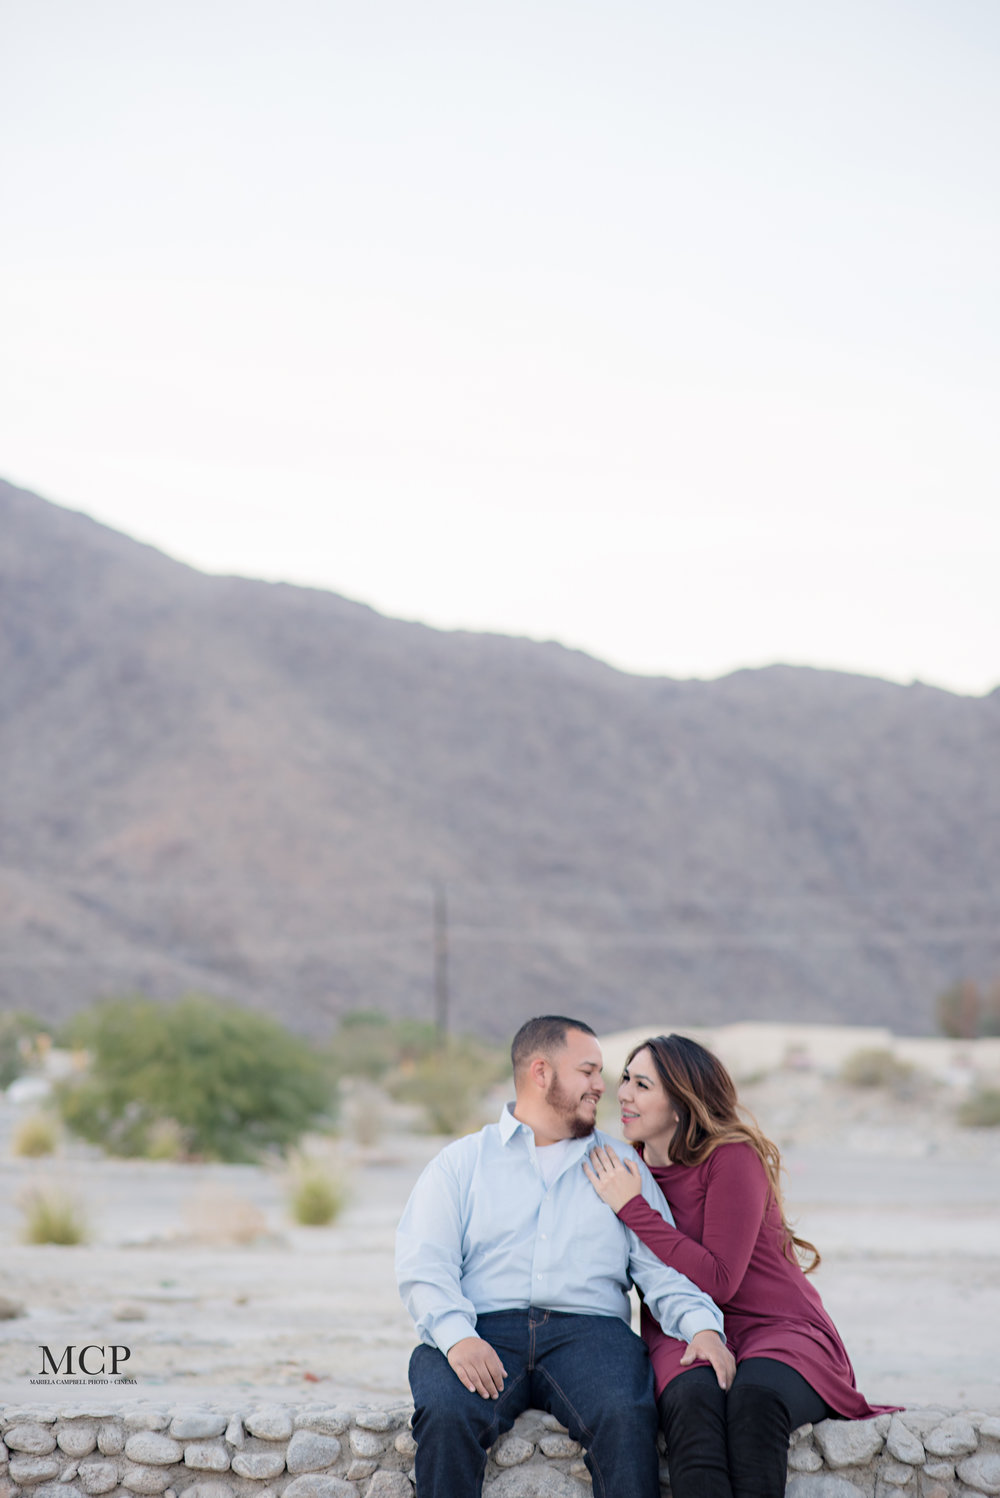 MCP- Engagement Palm Springs-15.jpg